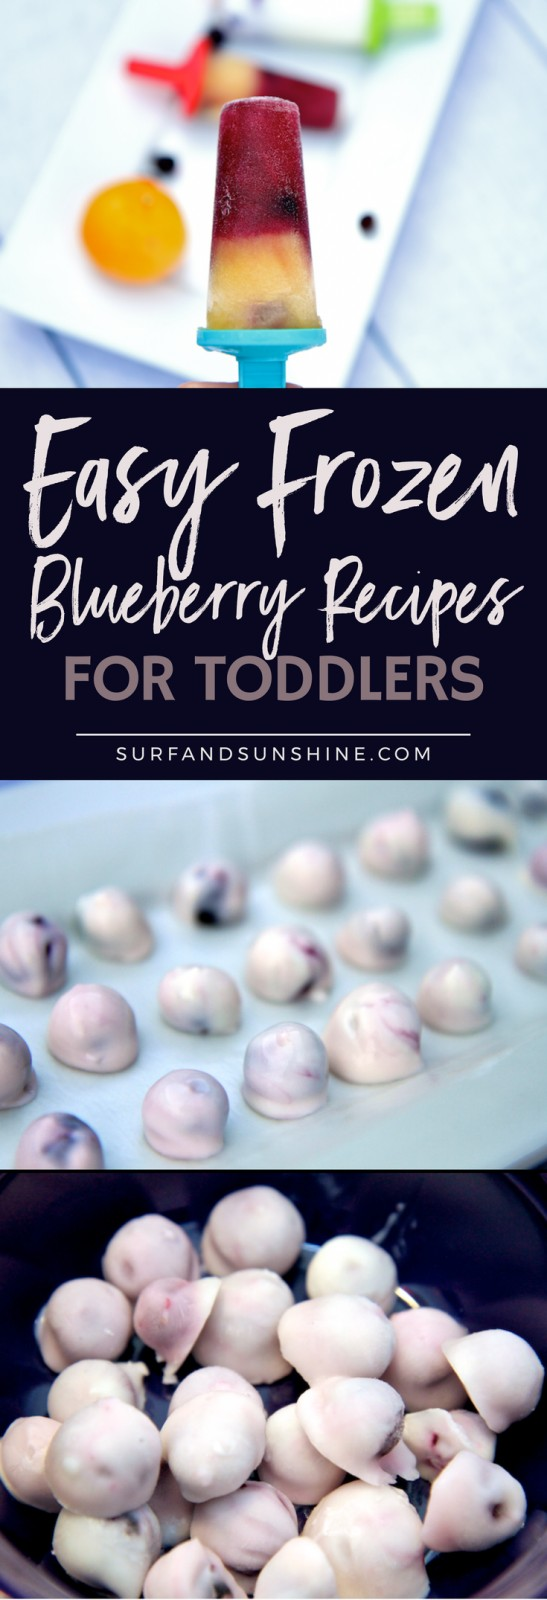 easy frozen blueberry recipes for toddlers